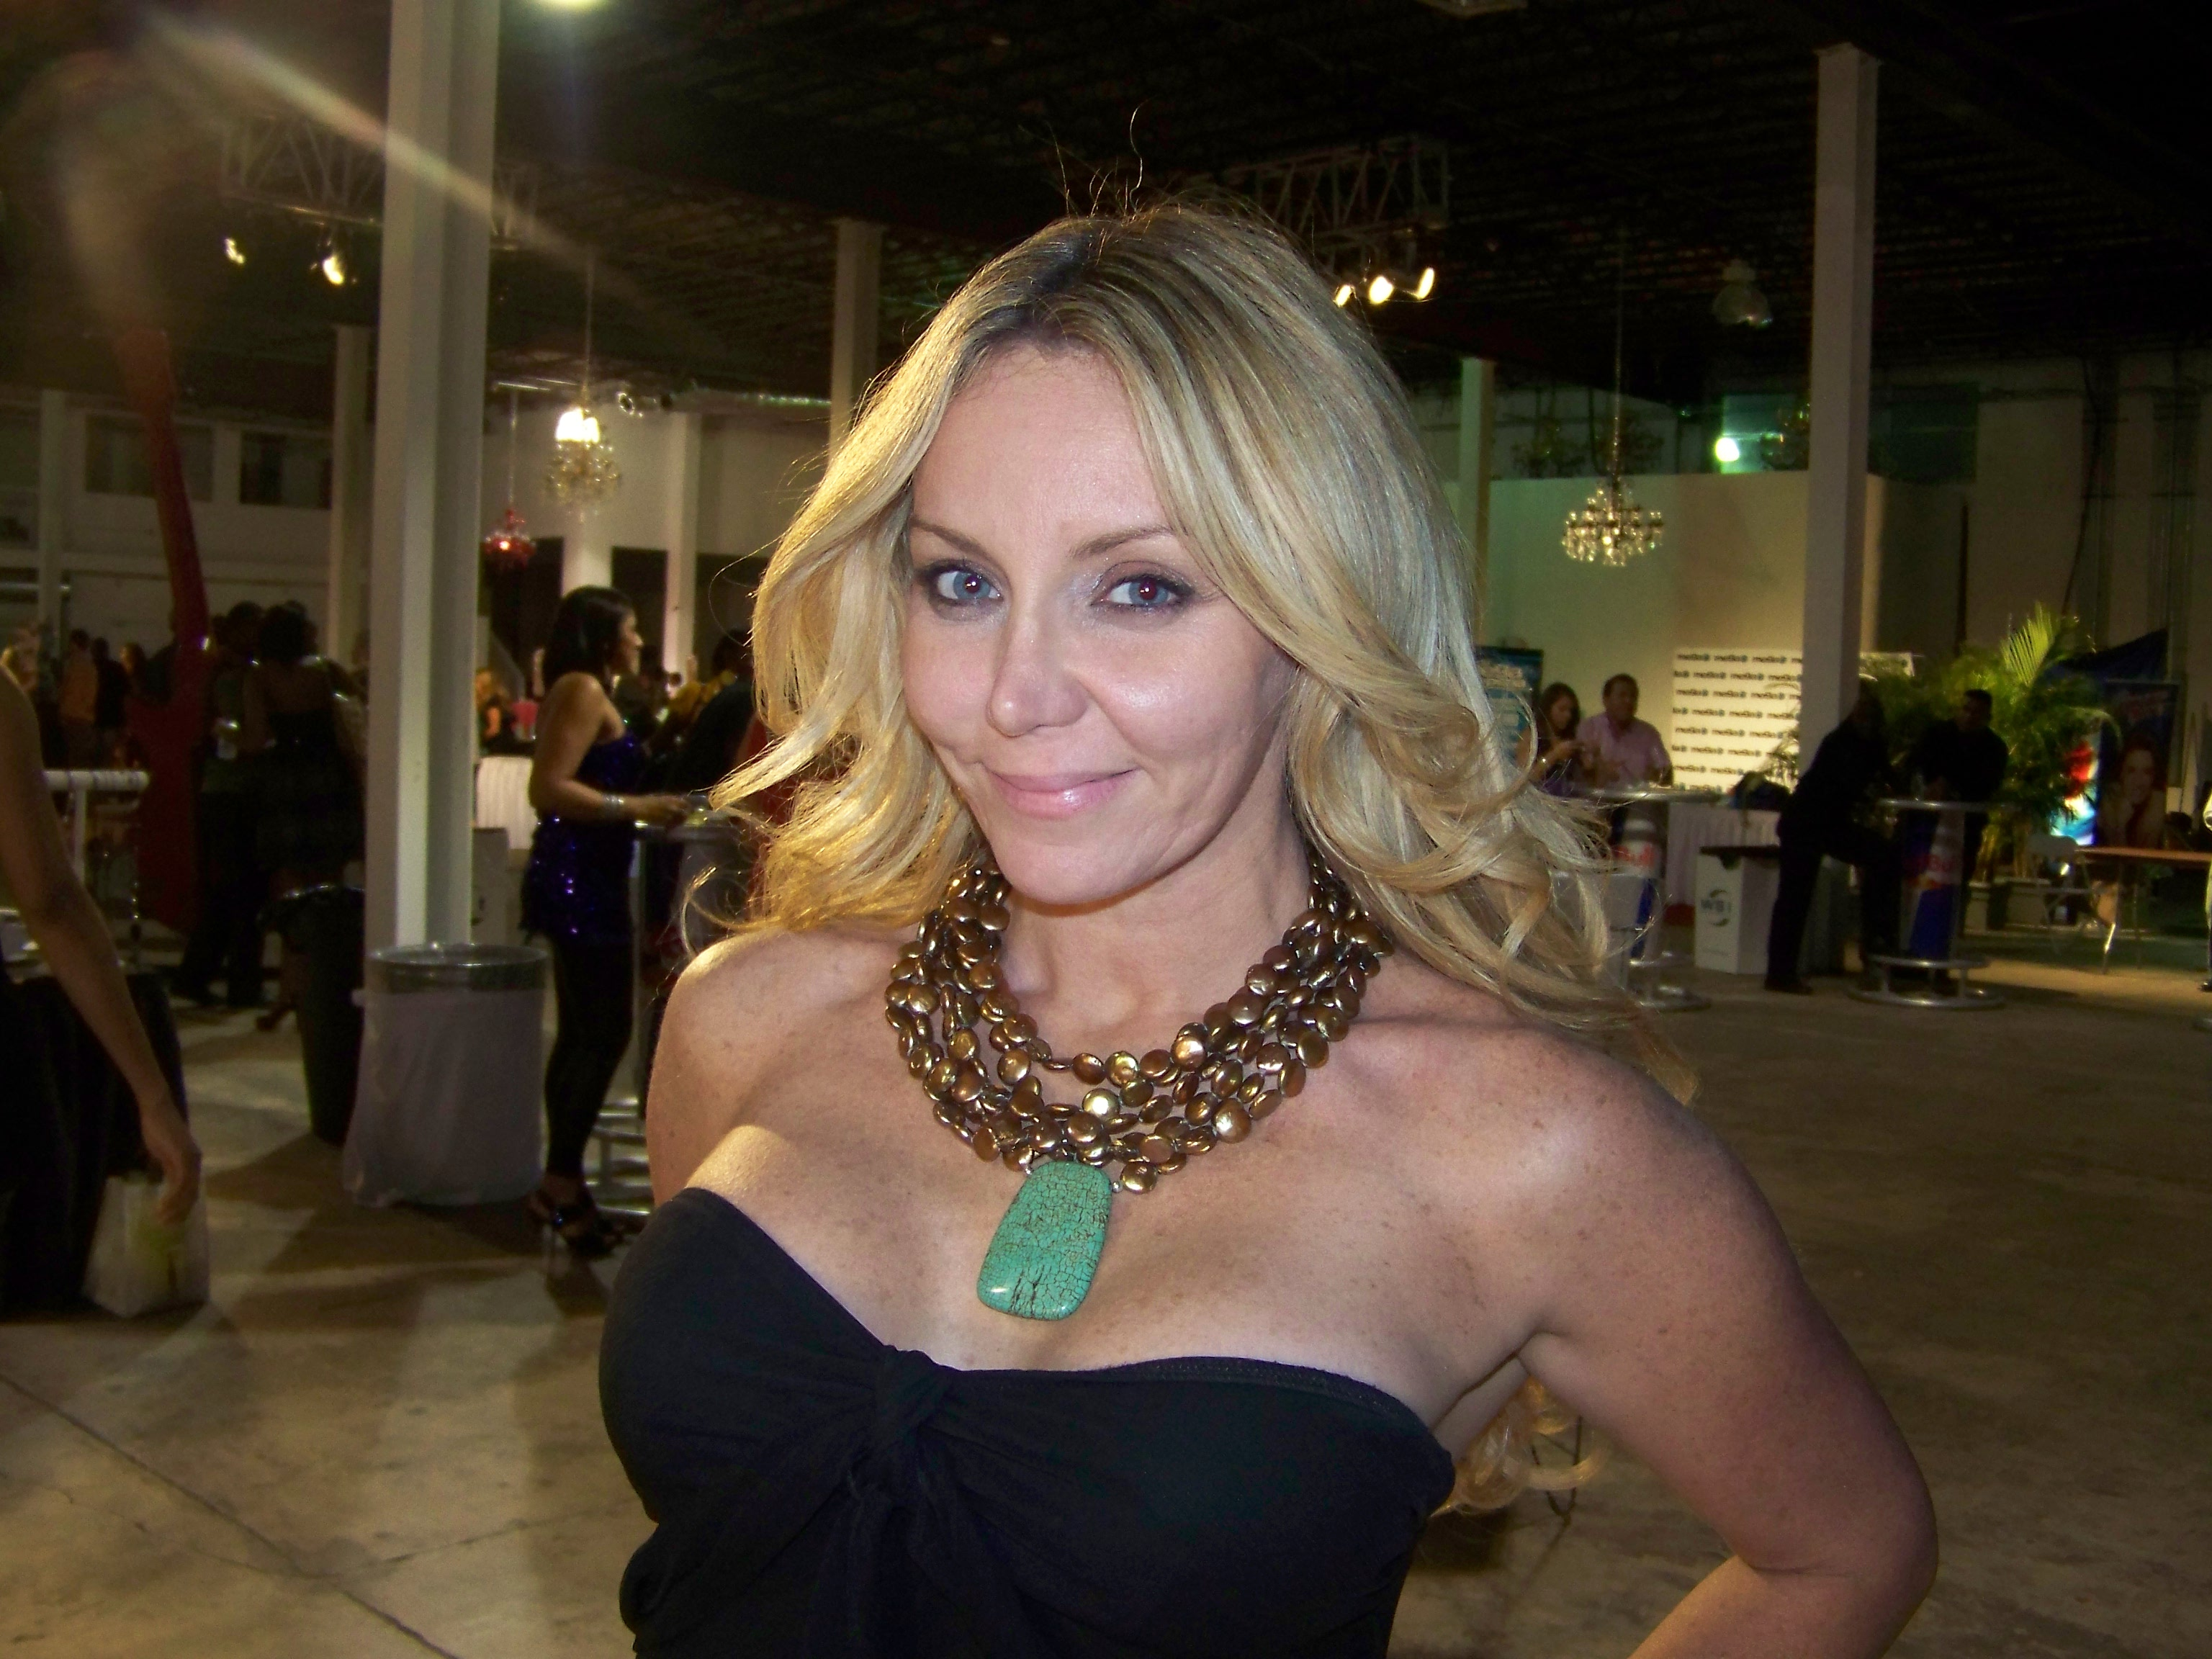 Blonde wearing Maleku Jewelry necklace at Miami Fashion Week